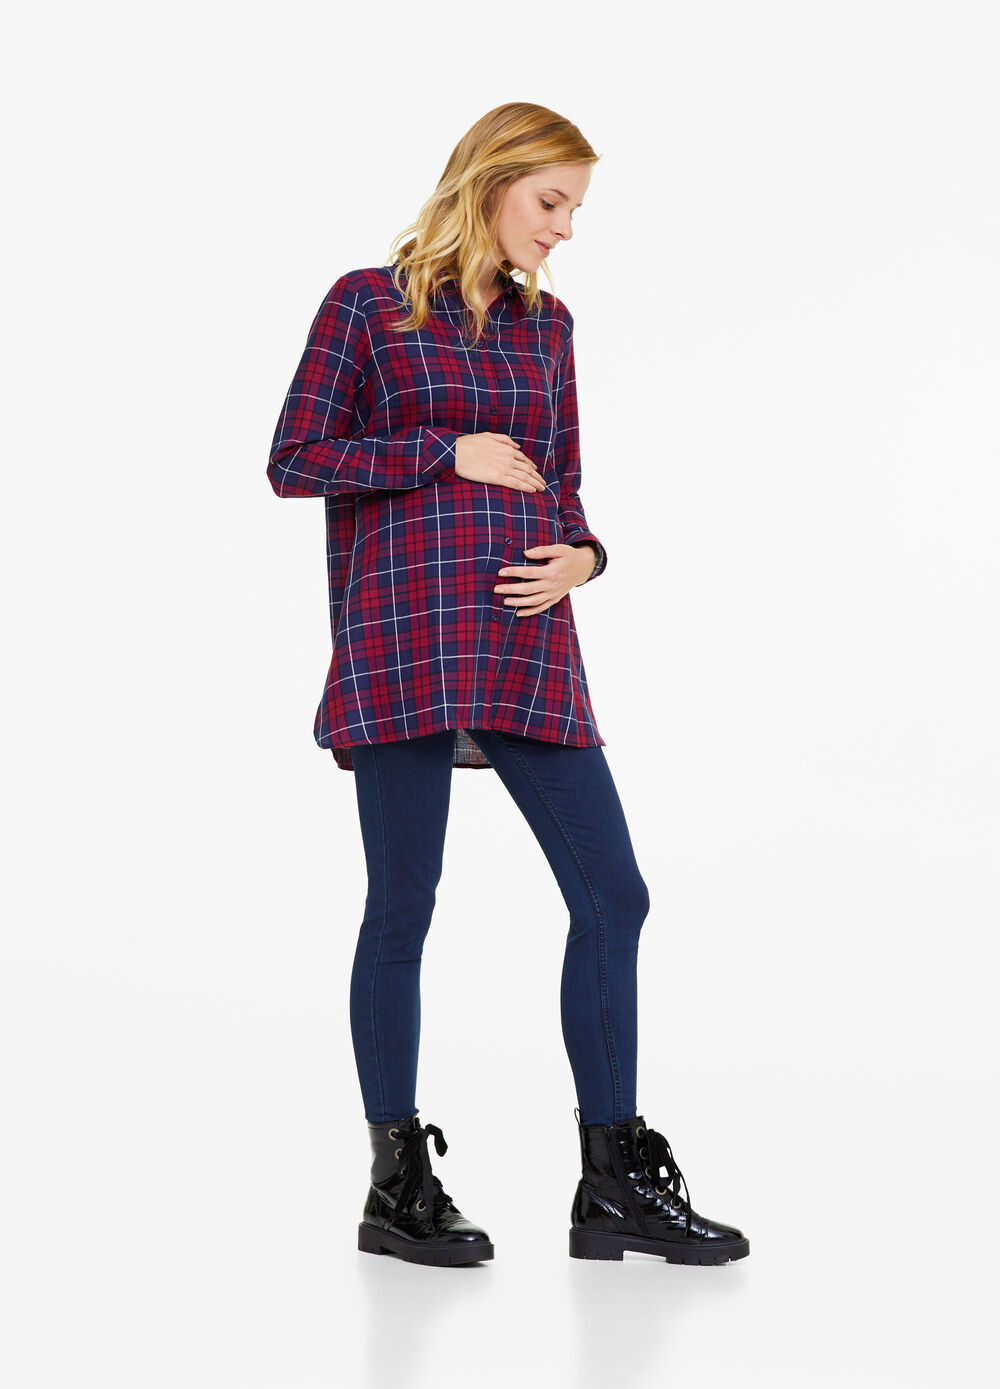 MUM 100% cotton shirt with check pattern